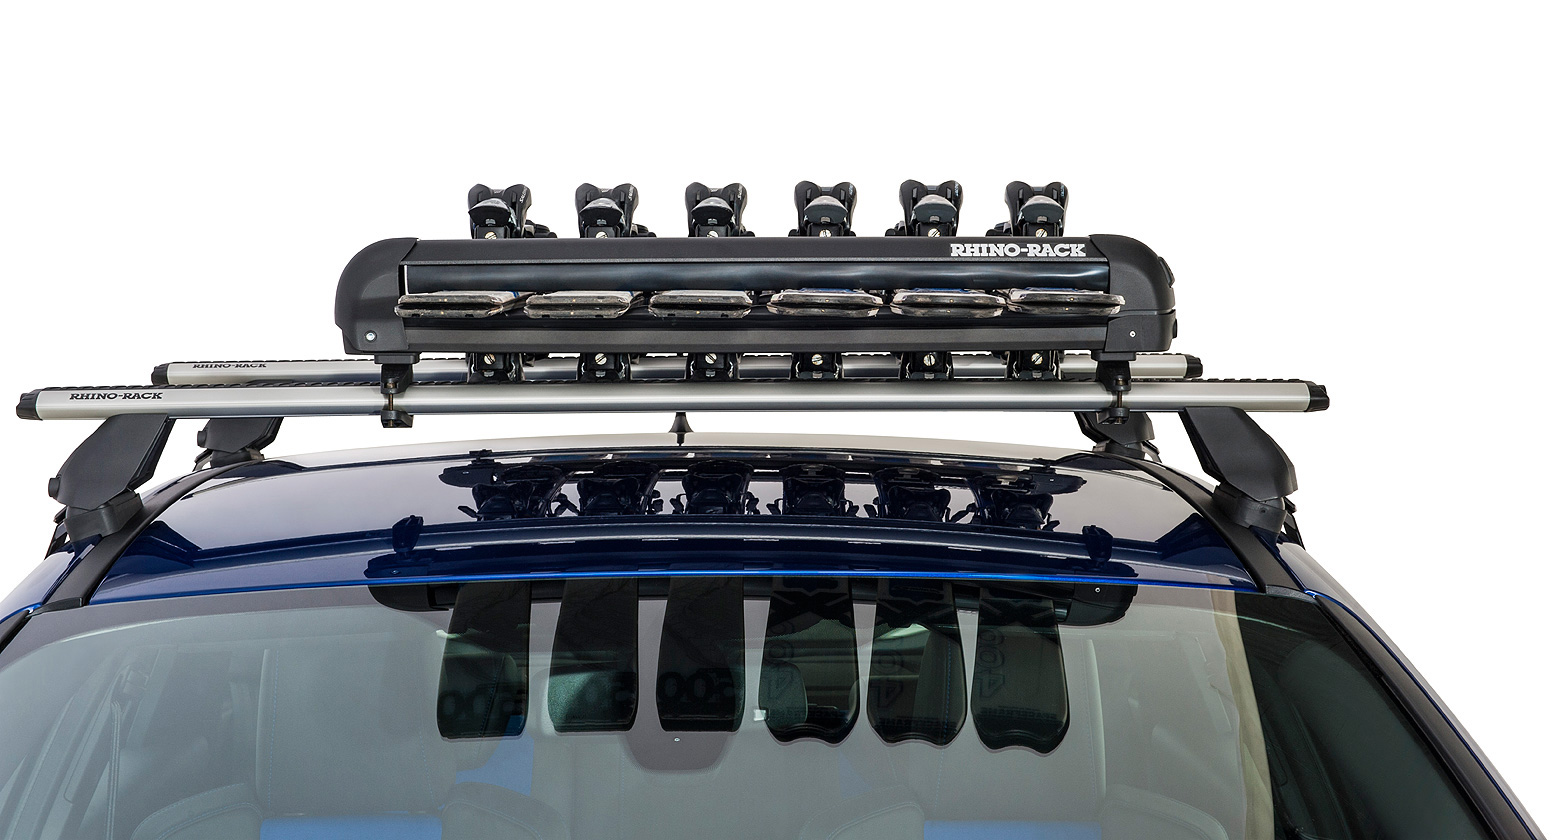 576 Ski And Snowboard Carrier 6 Skis Or 4 Snowboards